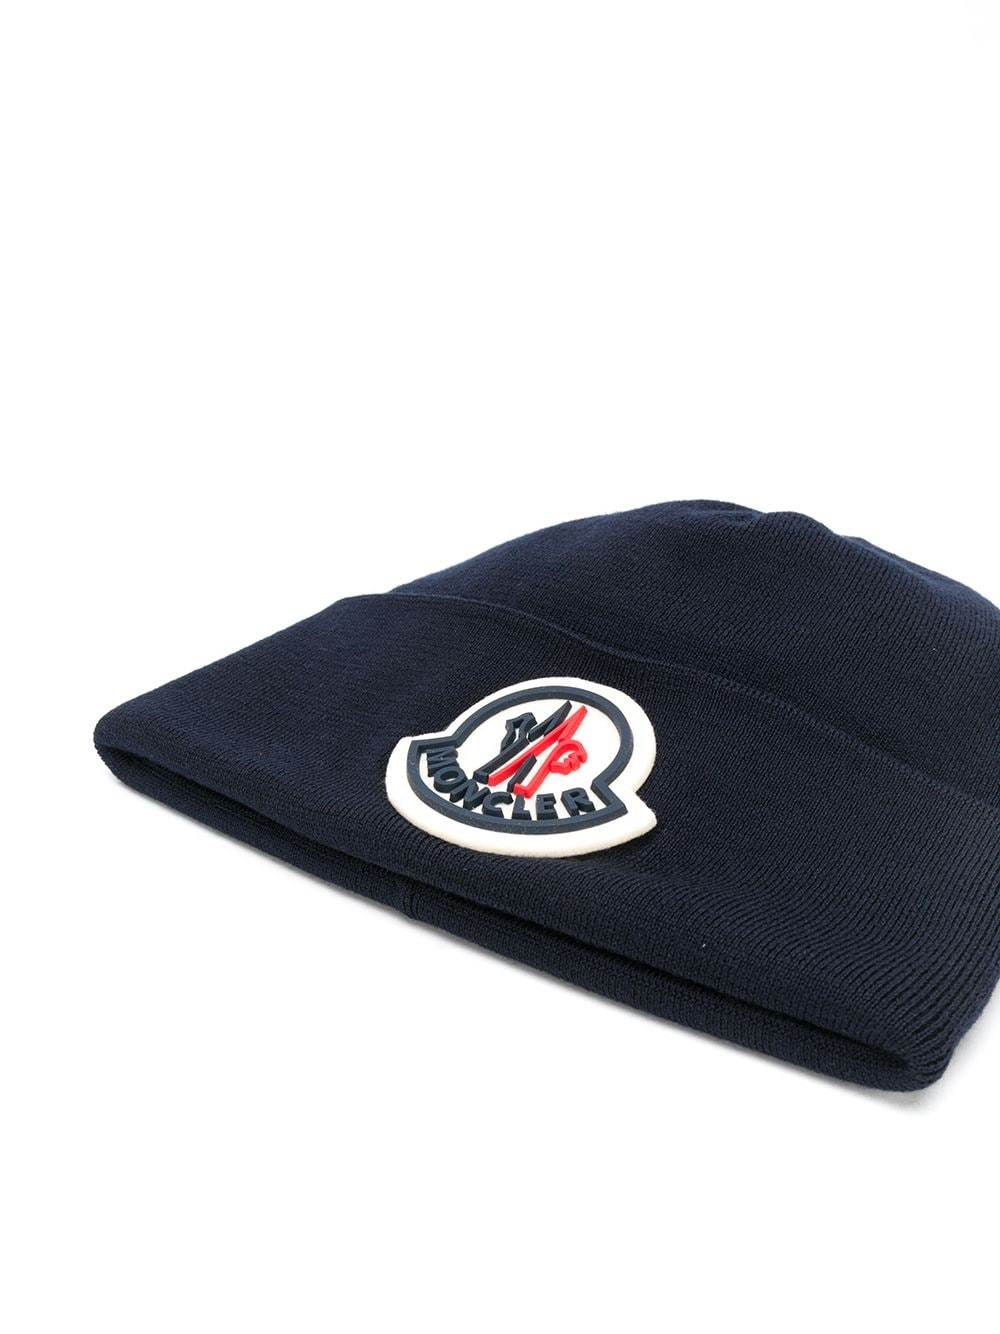 Moncler rubber logo patch beanie navy